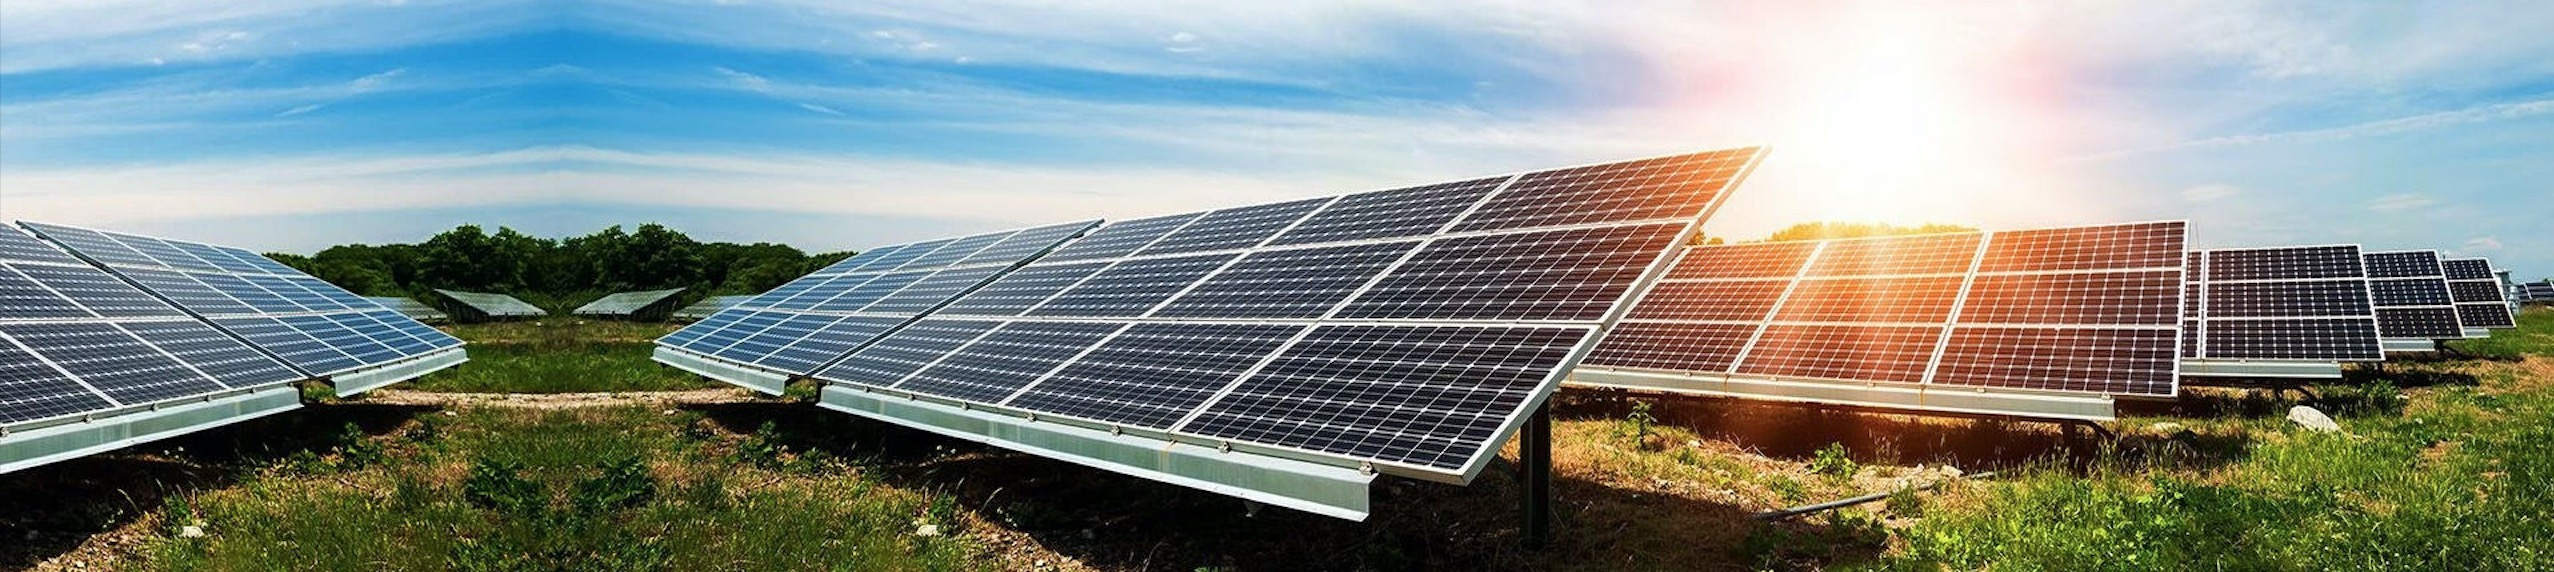 Solar Power System Solutions Supplier